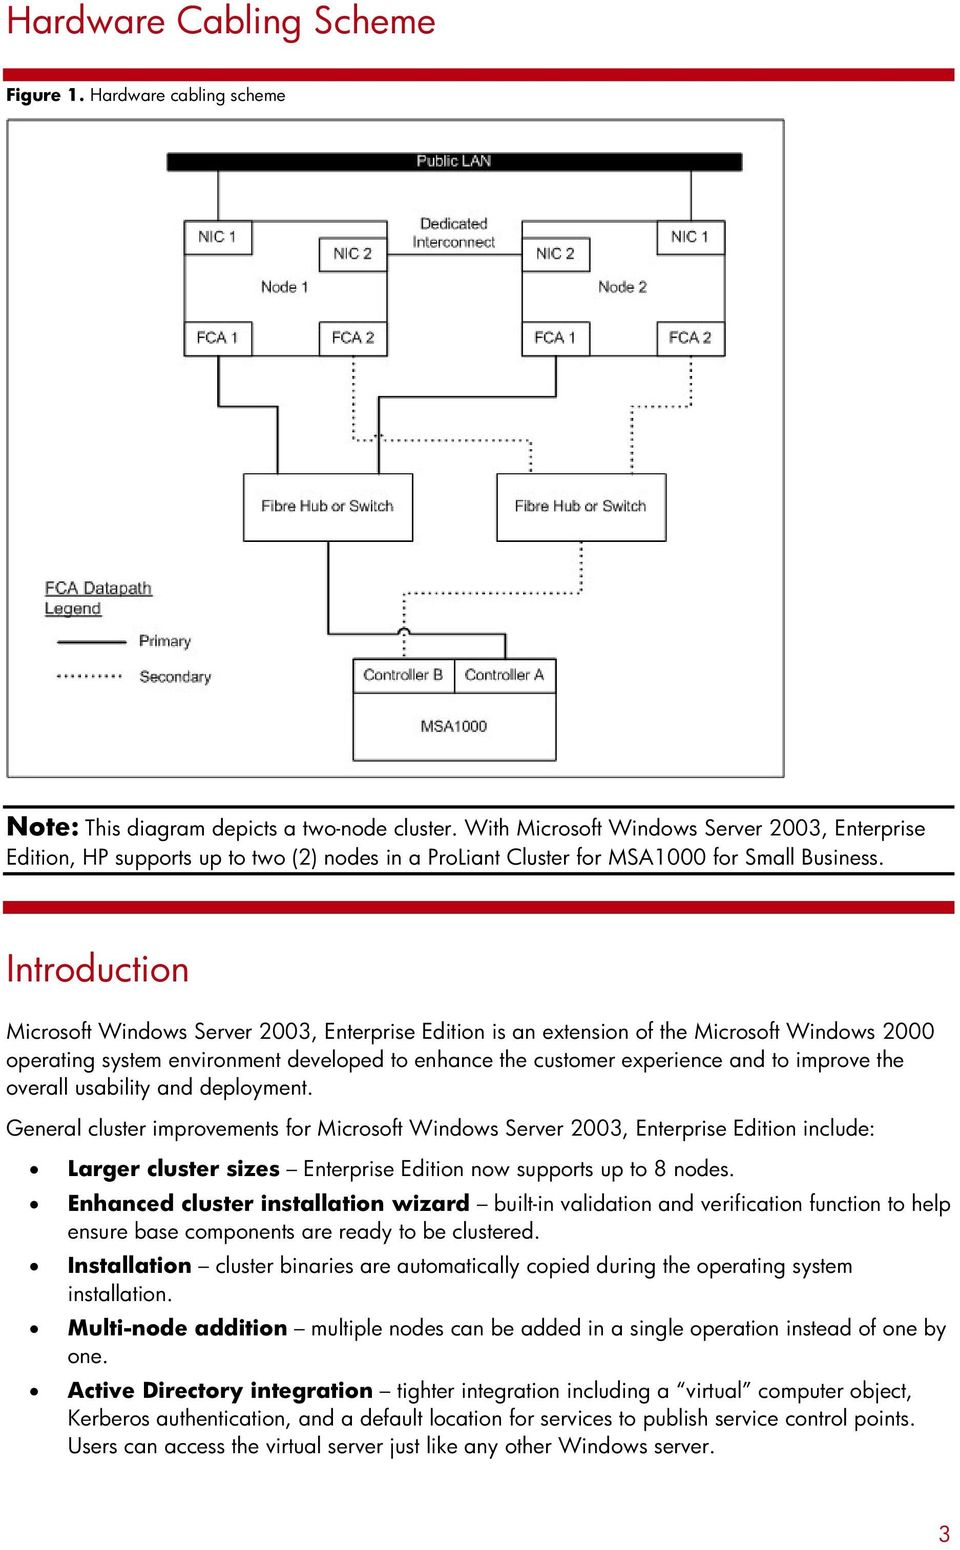 Introduction Microsoft Windows Server 2003, Enterprise Edition is an extension of the Microsoft Windows 2000 operating system environment developed to enhance the customer experience and to improve